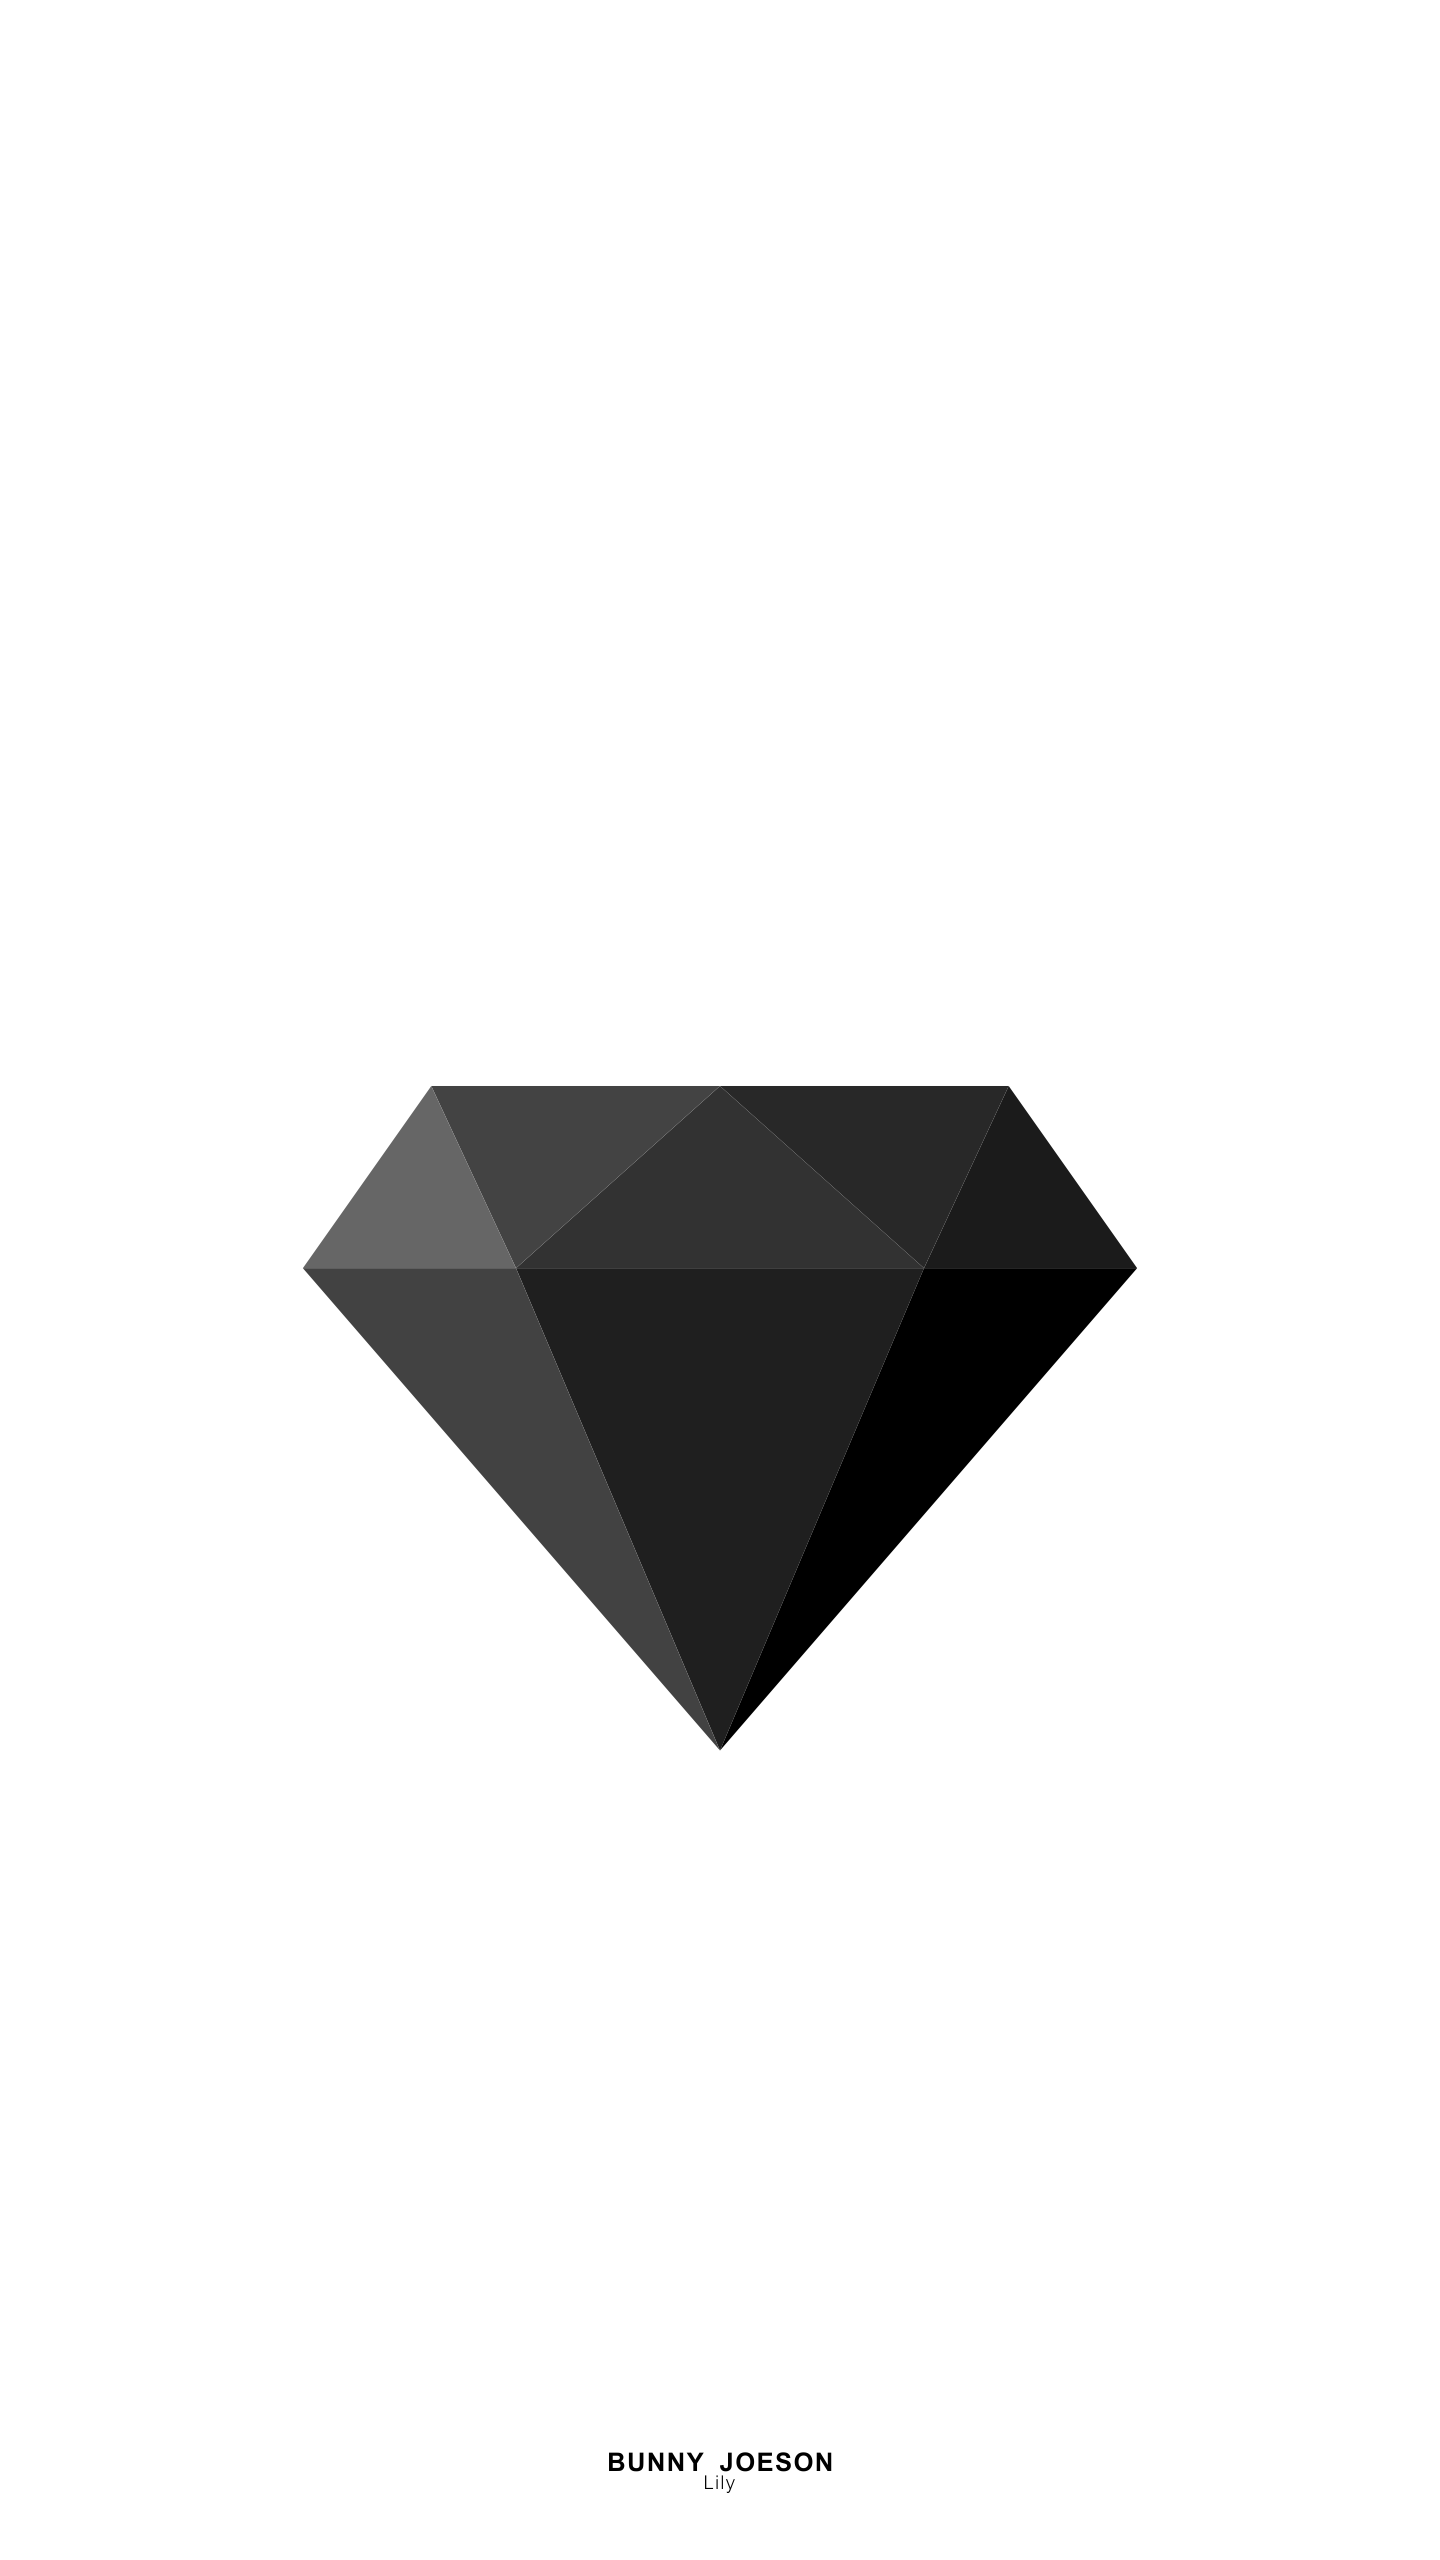 #iphone# #phone# #life# #design# #wallpaper# #color# #iOS# #diamond# from Uploaded by user